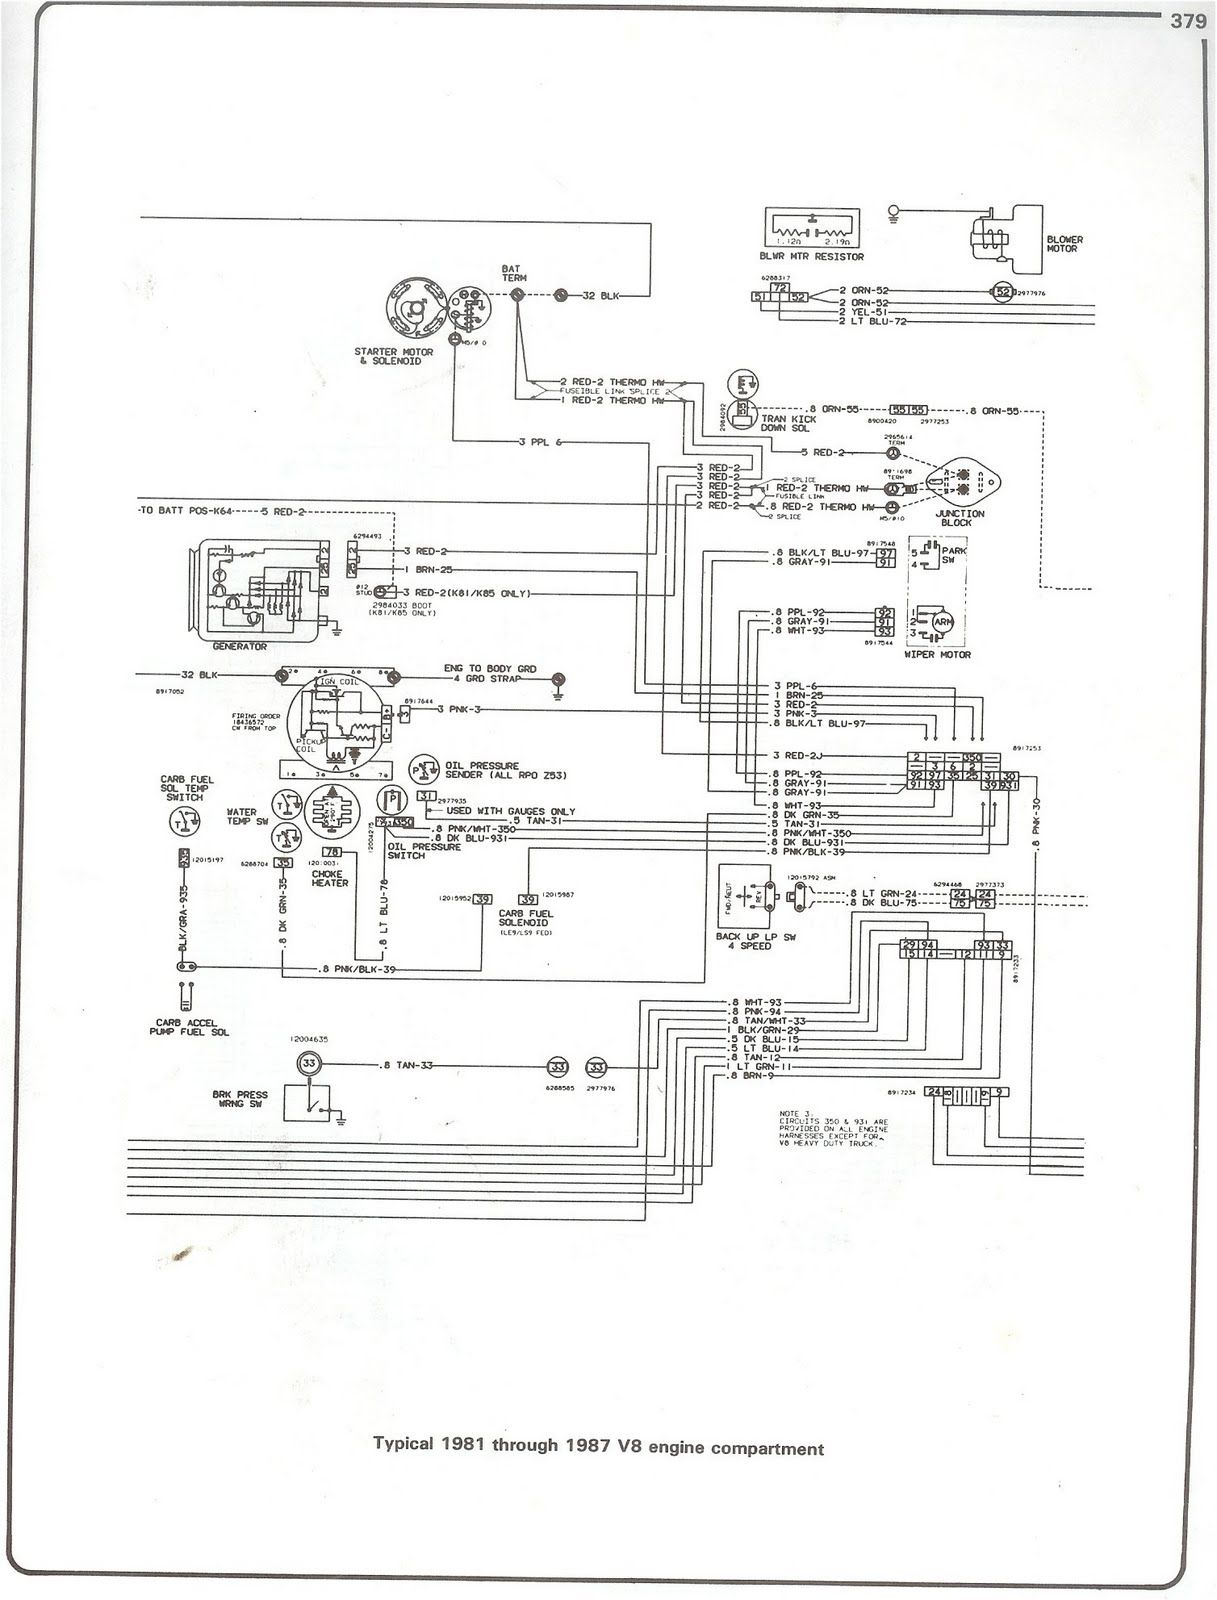 87 c10 alternator wiring diagram z3 wiring library diagram rh 1 buerw mein custombike de